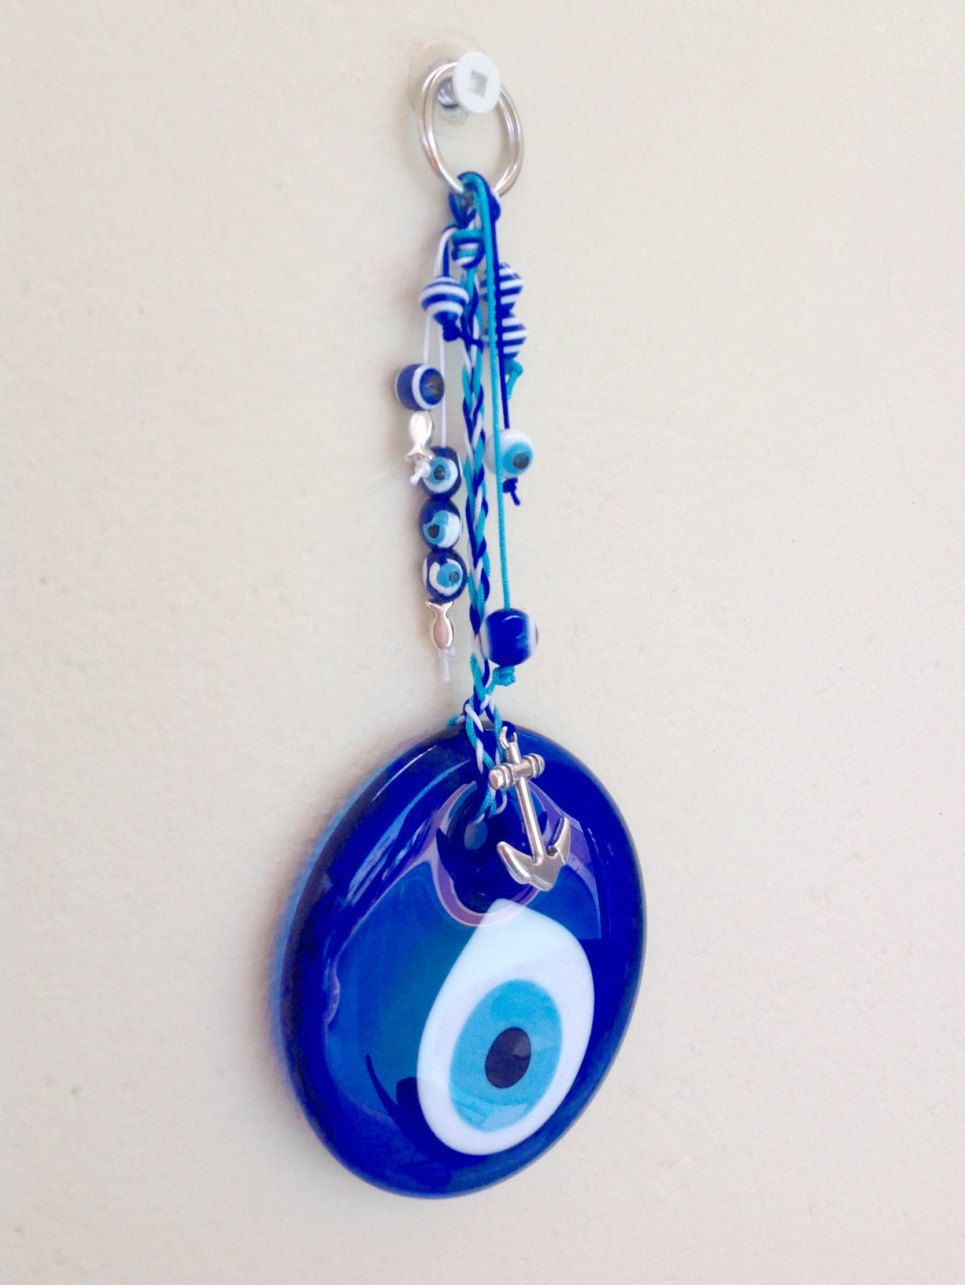 Evil Eye Wall Hanging round evil eye, charm, good luck charm, nazar, talisman, greek